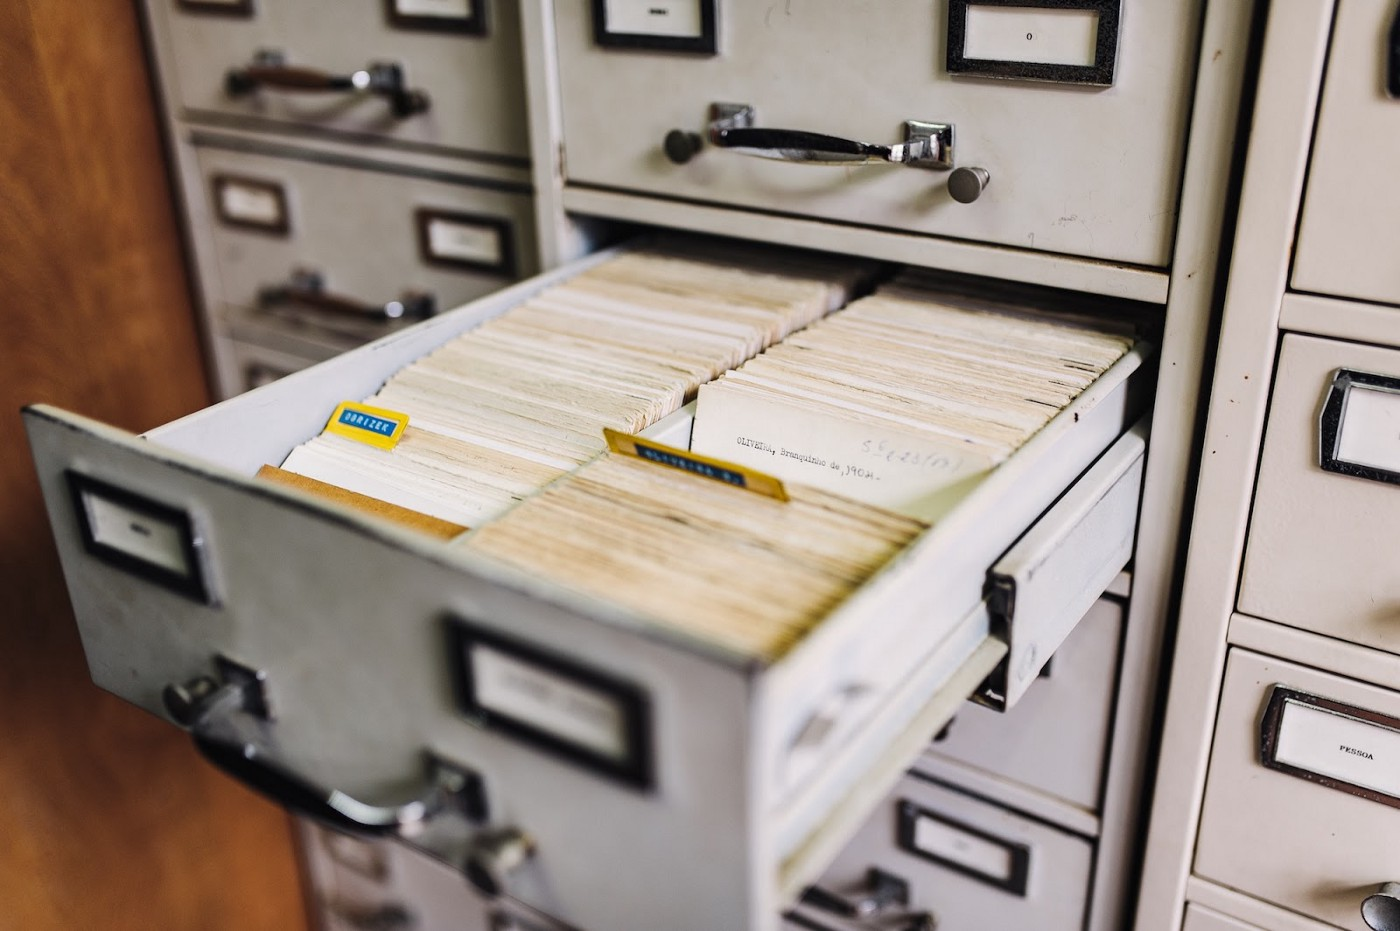 A filing cabinet with an open drawer with many index cards inside.